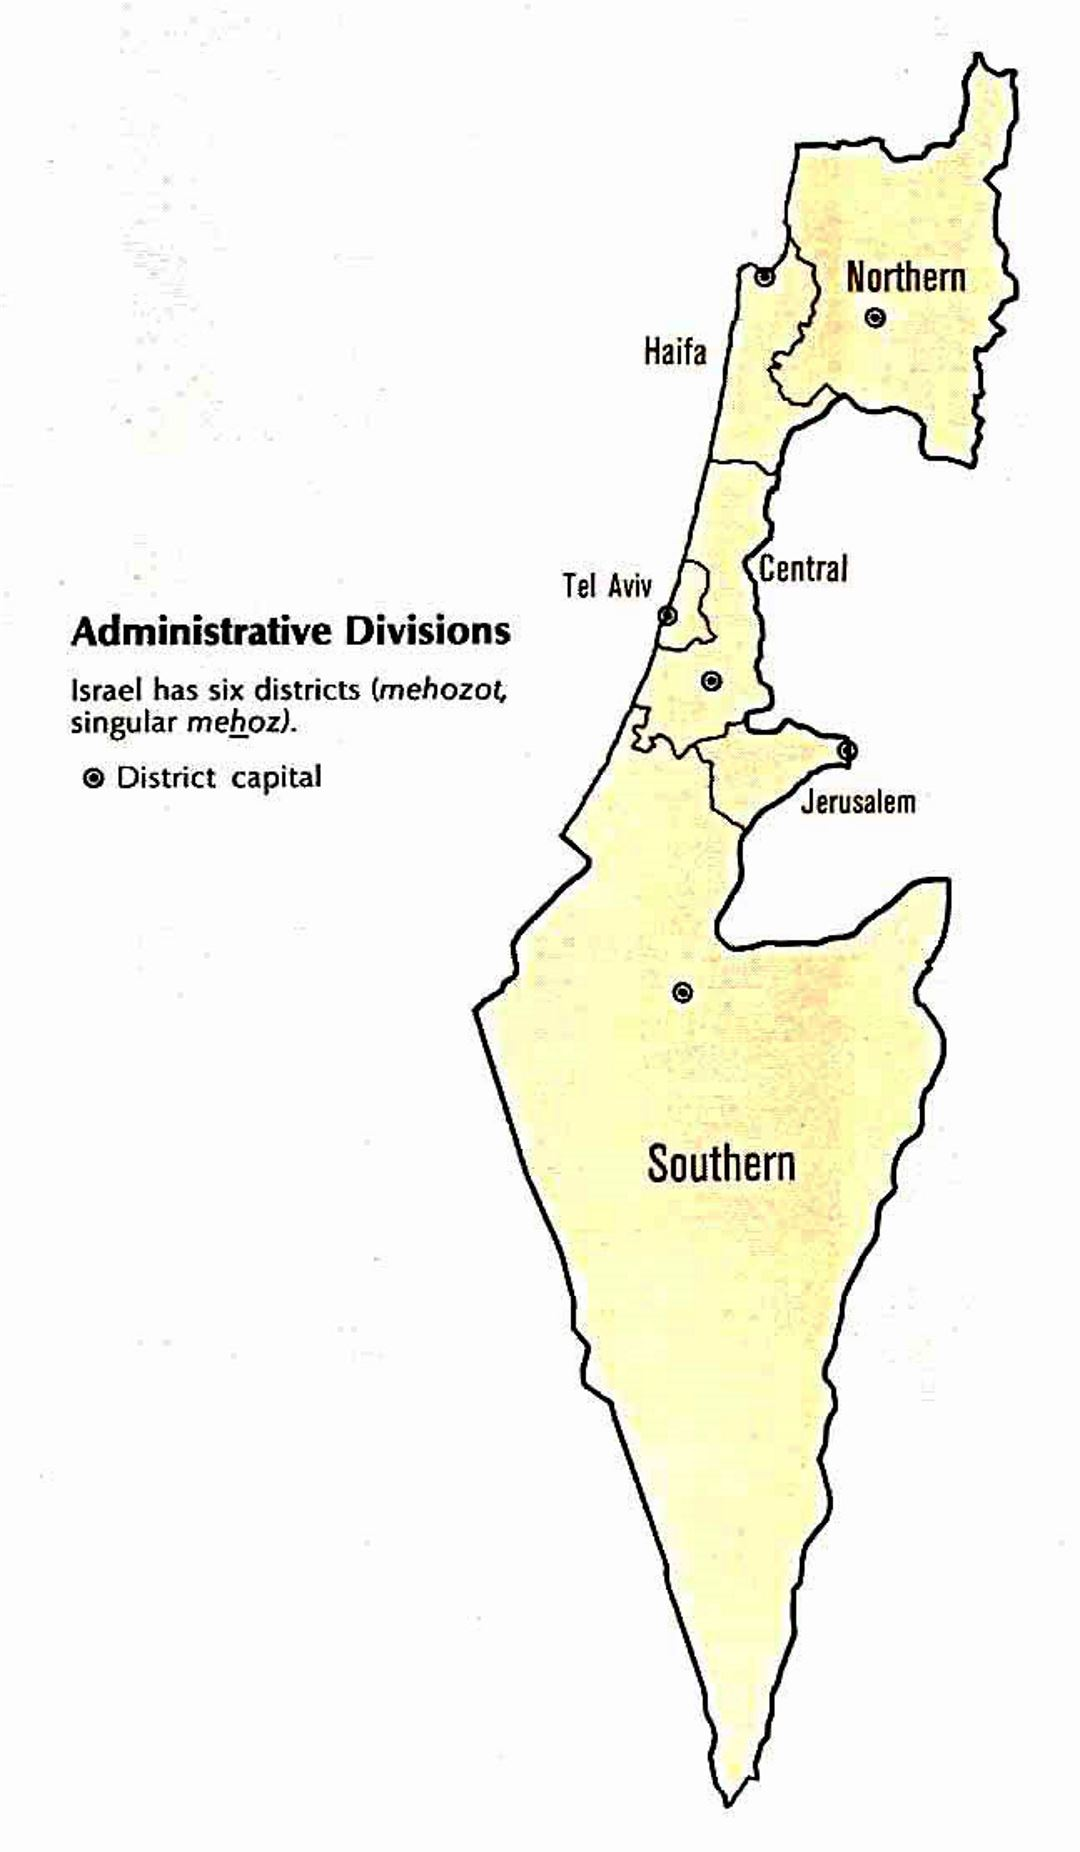 Administrative divisions map of Israel